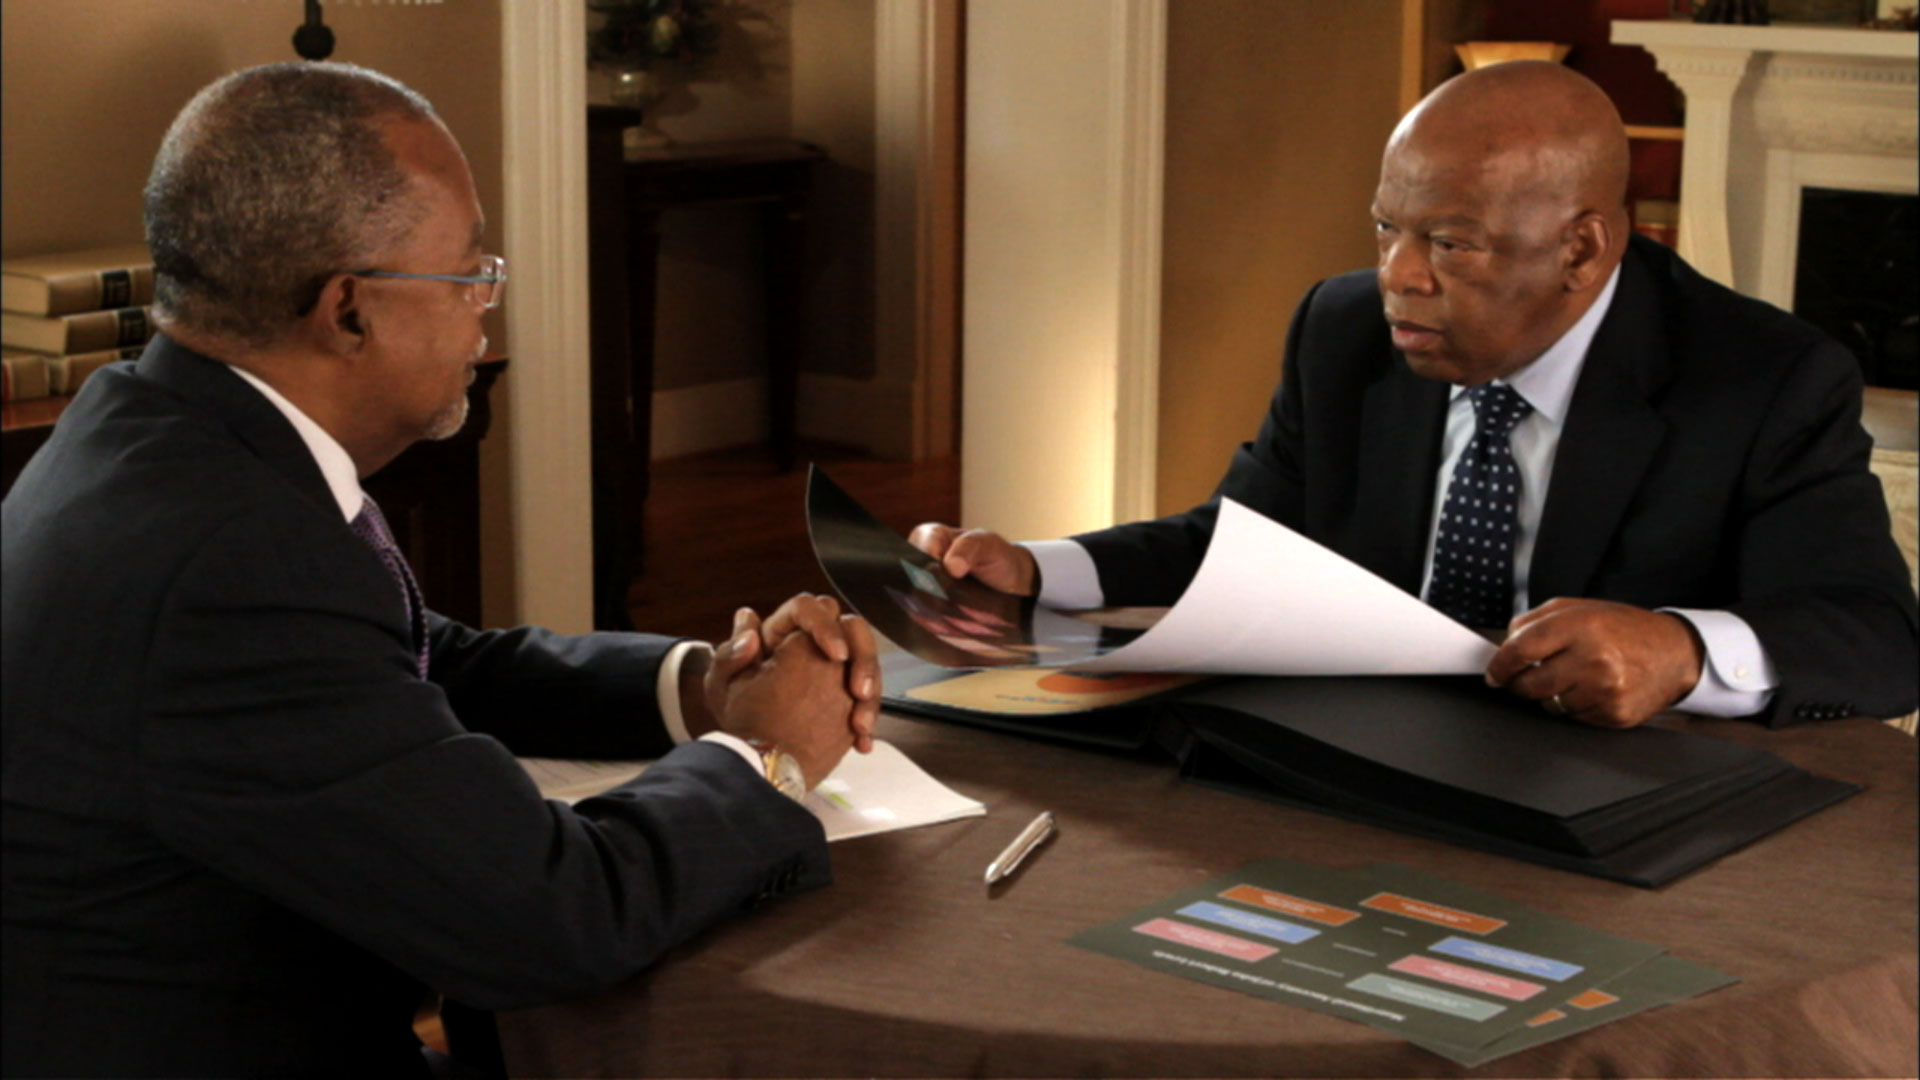 Full Episode: John Lewis and Cory Booker